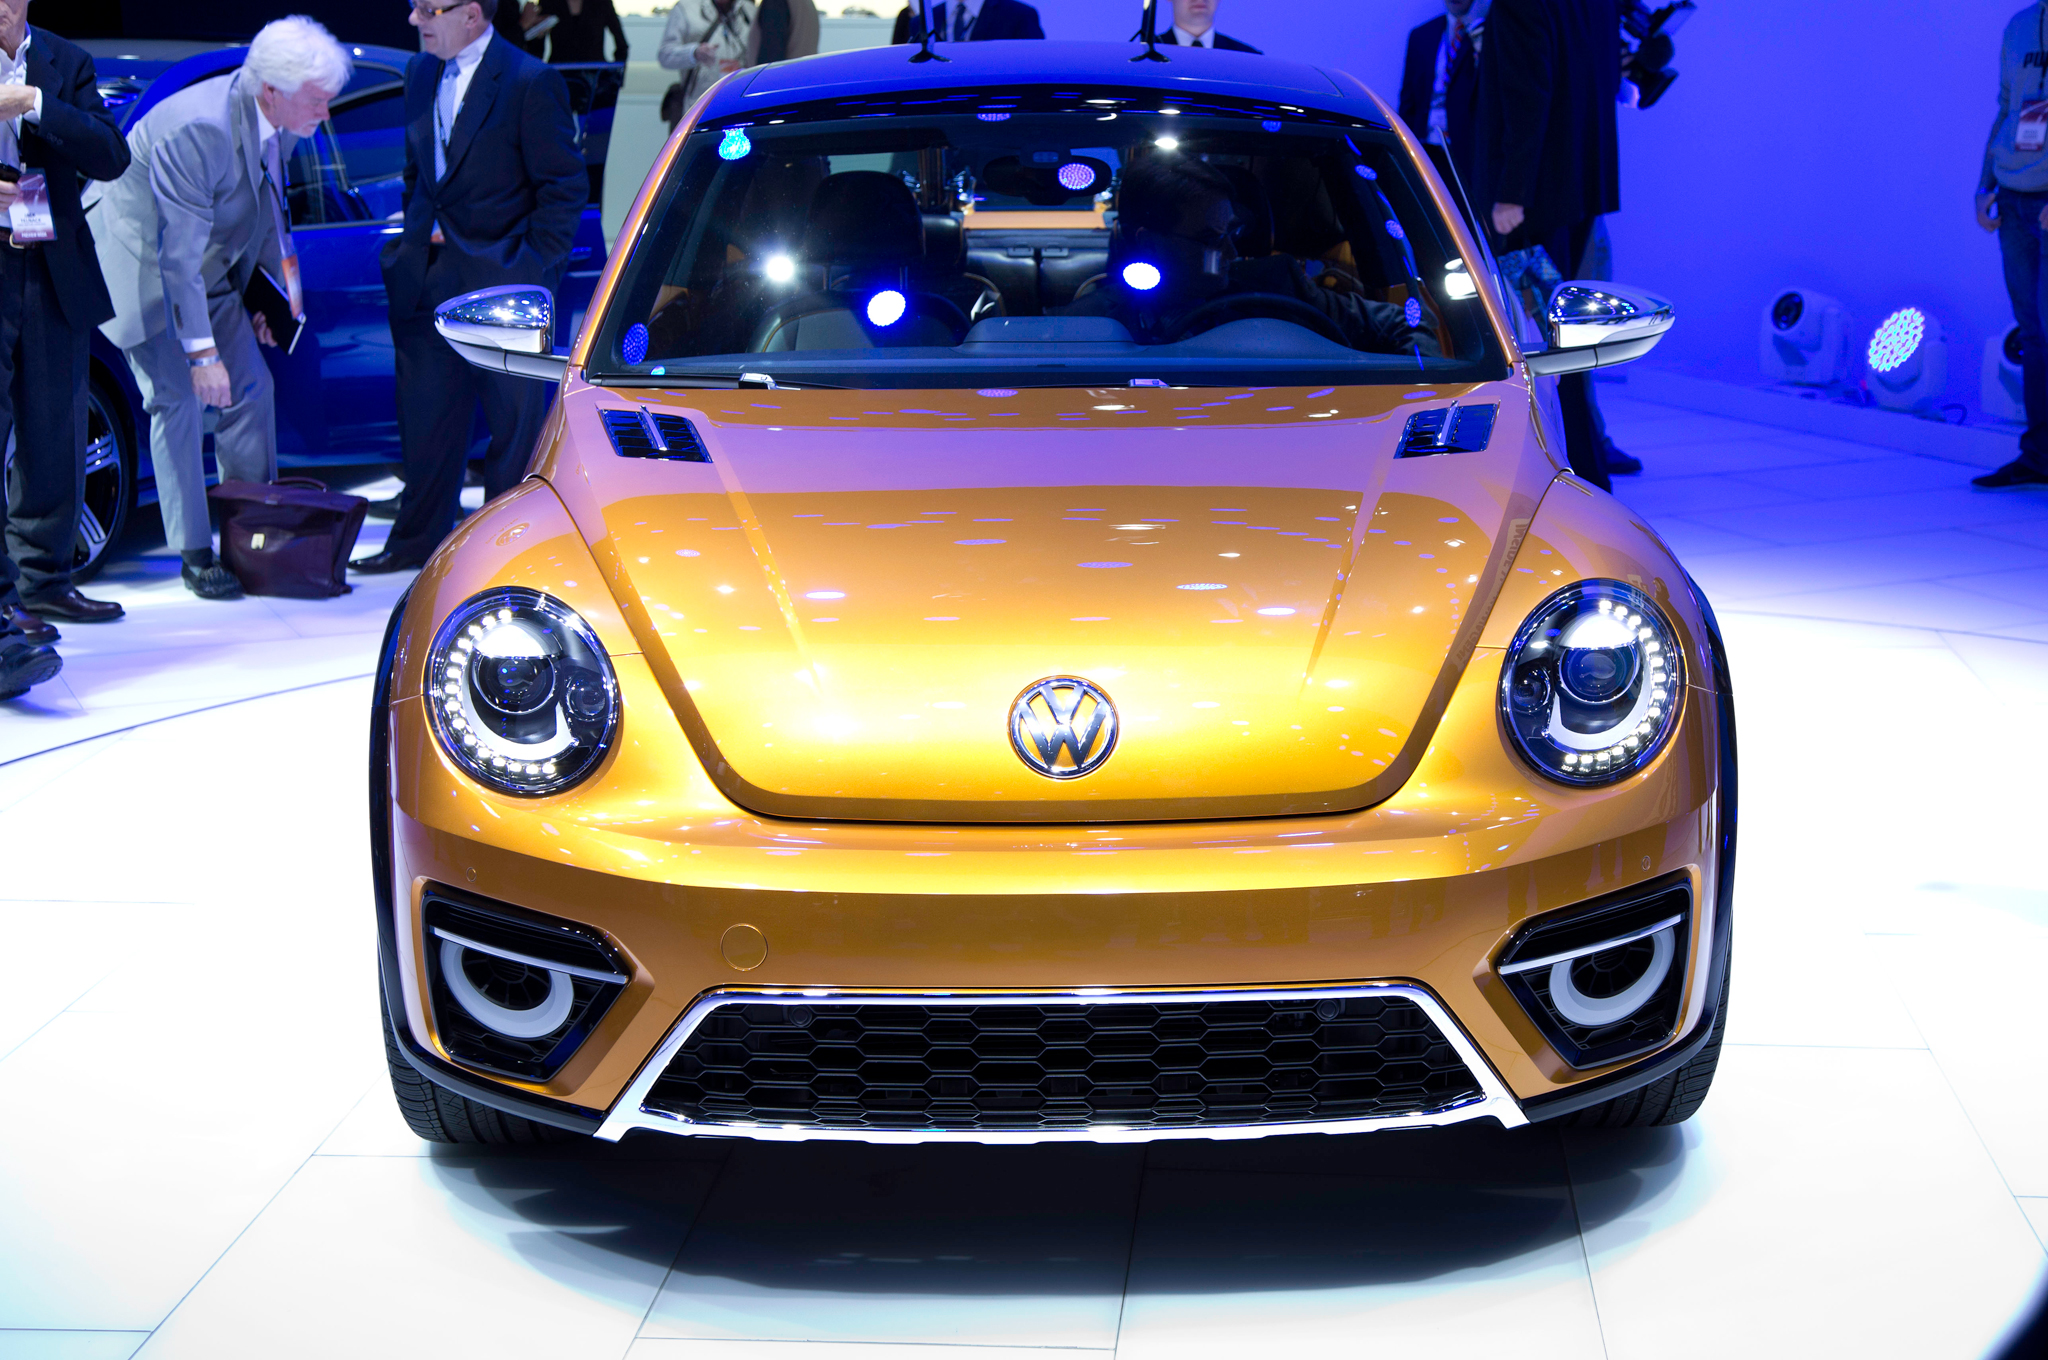 2019 Volkswagen Beetle Dune Concept photo - 2